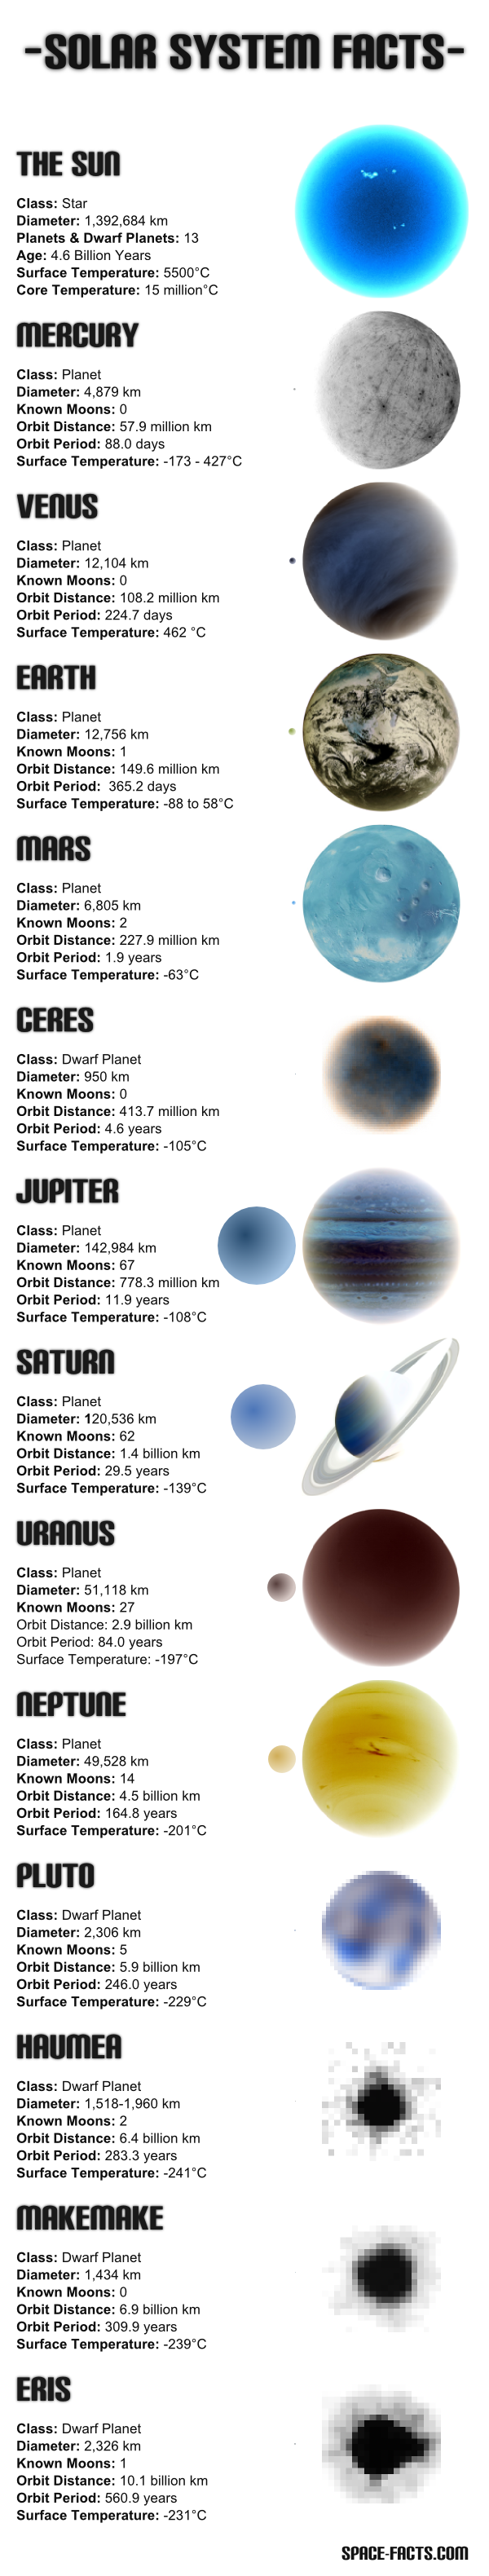 Solar System Facts (Planets & Dwarf Planets) Negative